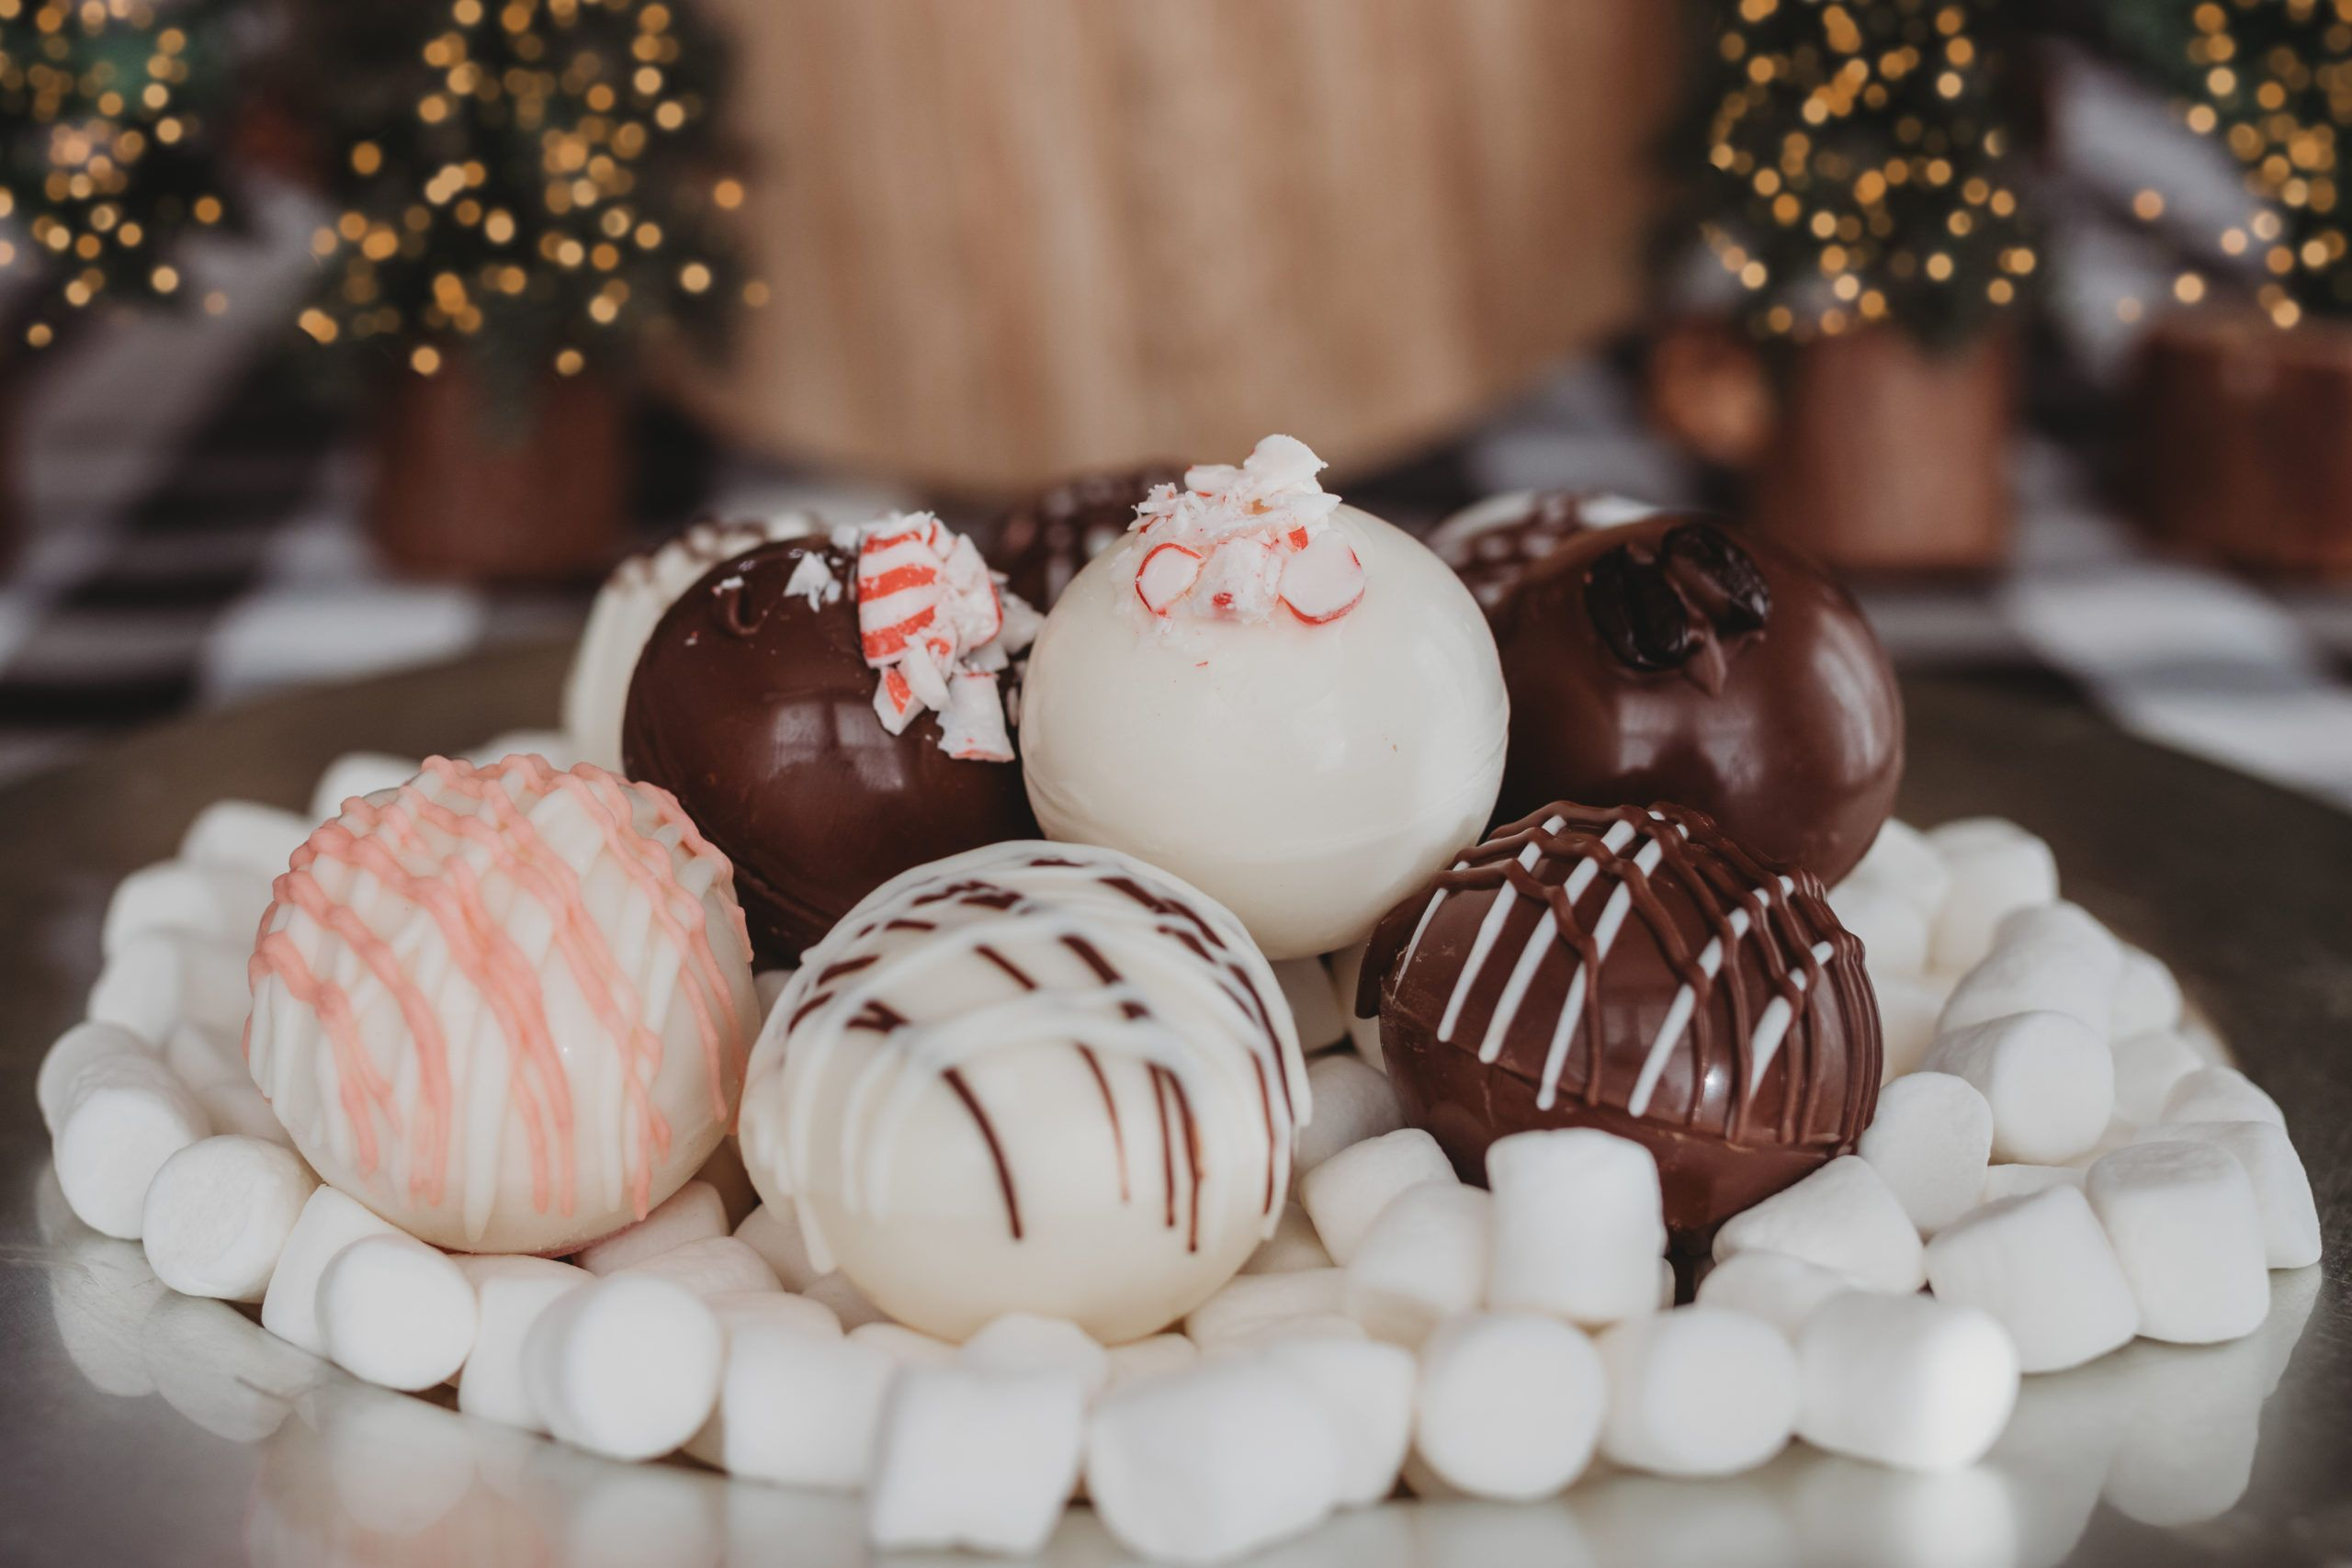 6 Flavors Of Hot Cocoa Bombs (With Recipes!)